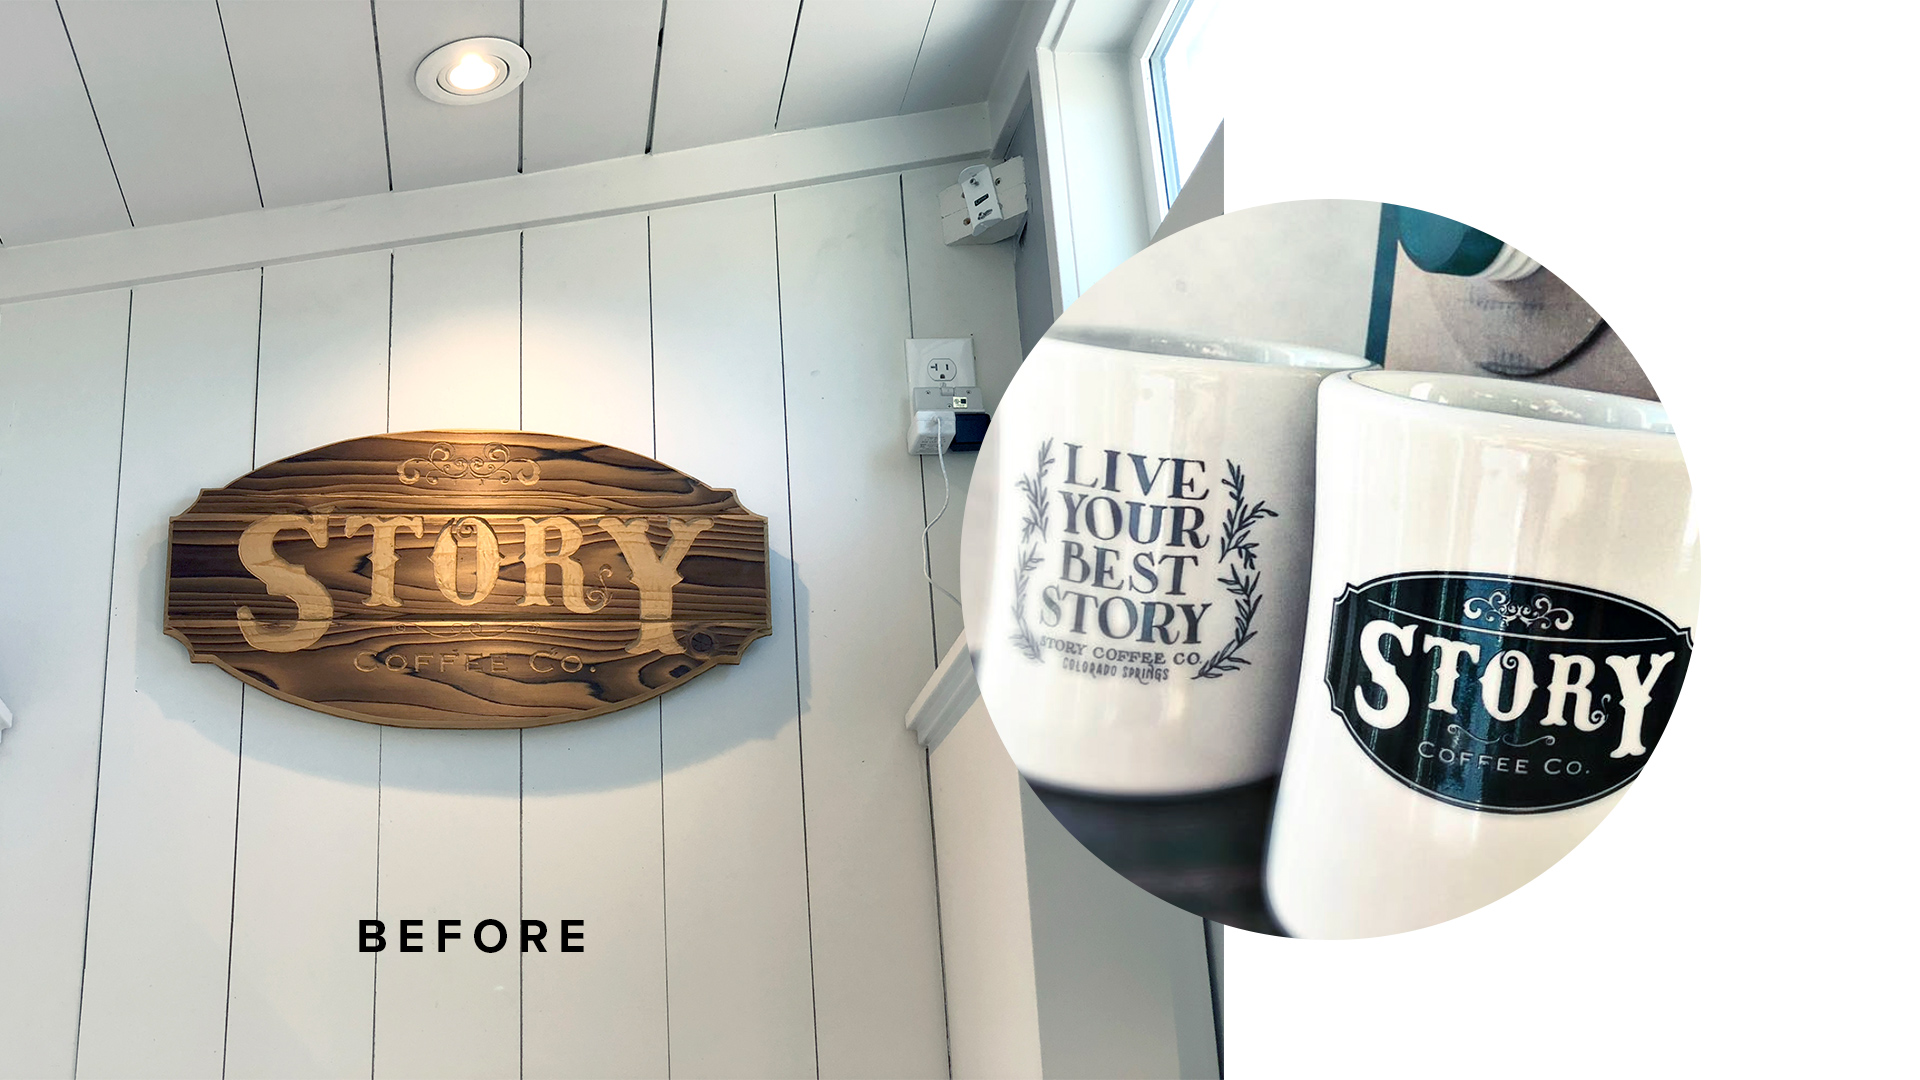 story-coffee-co-casestudy-3